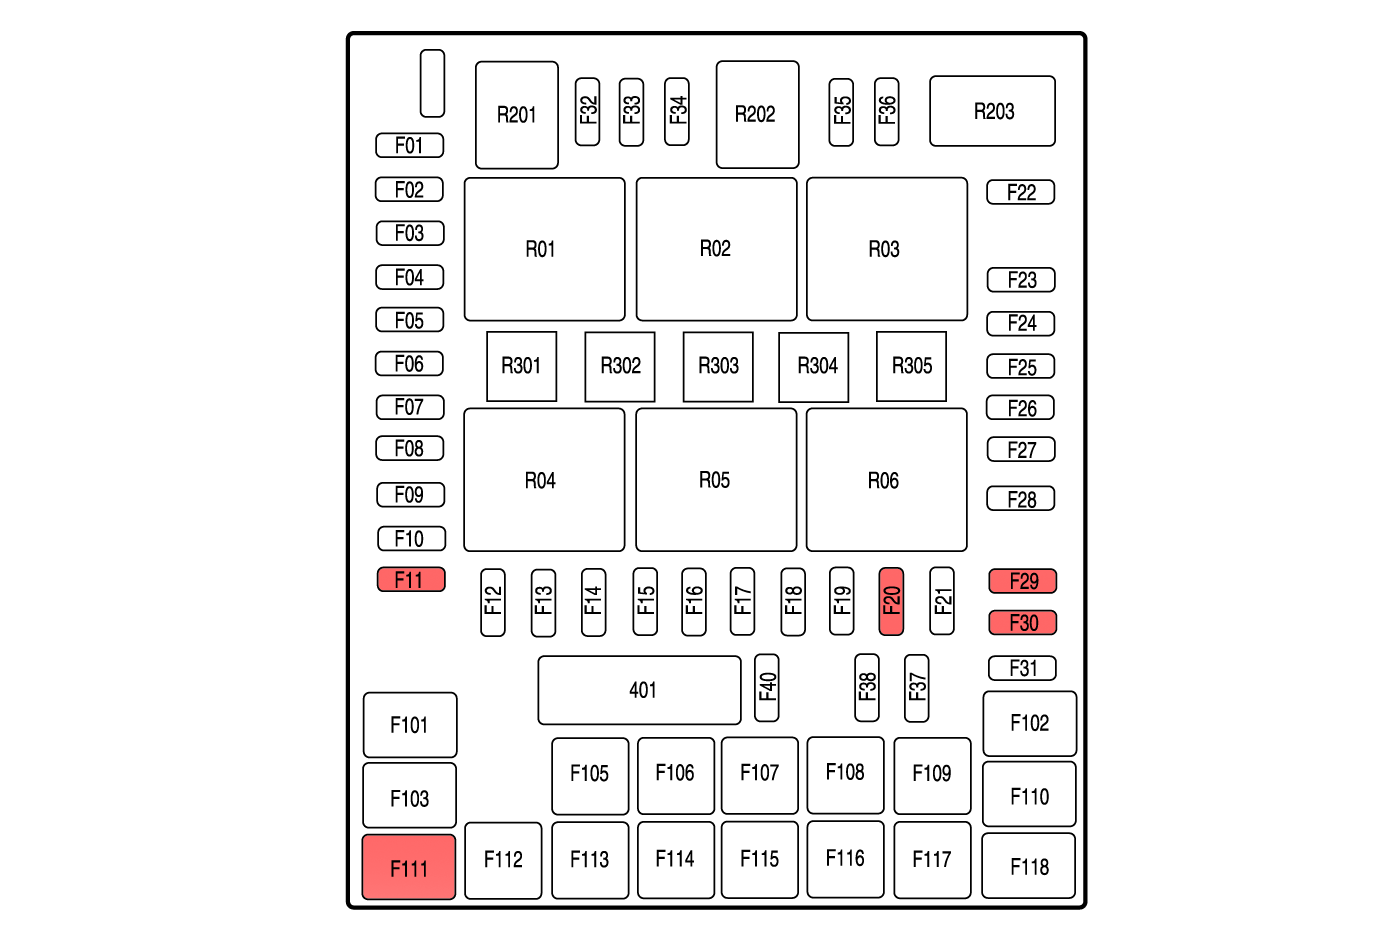 2007 F350 Wiring Diagram Trusted Diagrams Ford Fusion Fuse Panel F150 F250 Why Can T I Get Into Or Out Of 4wd Radio 2010